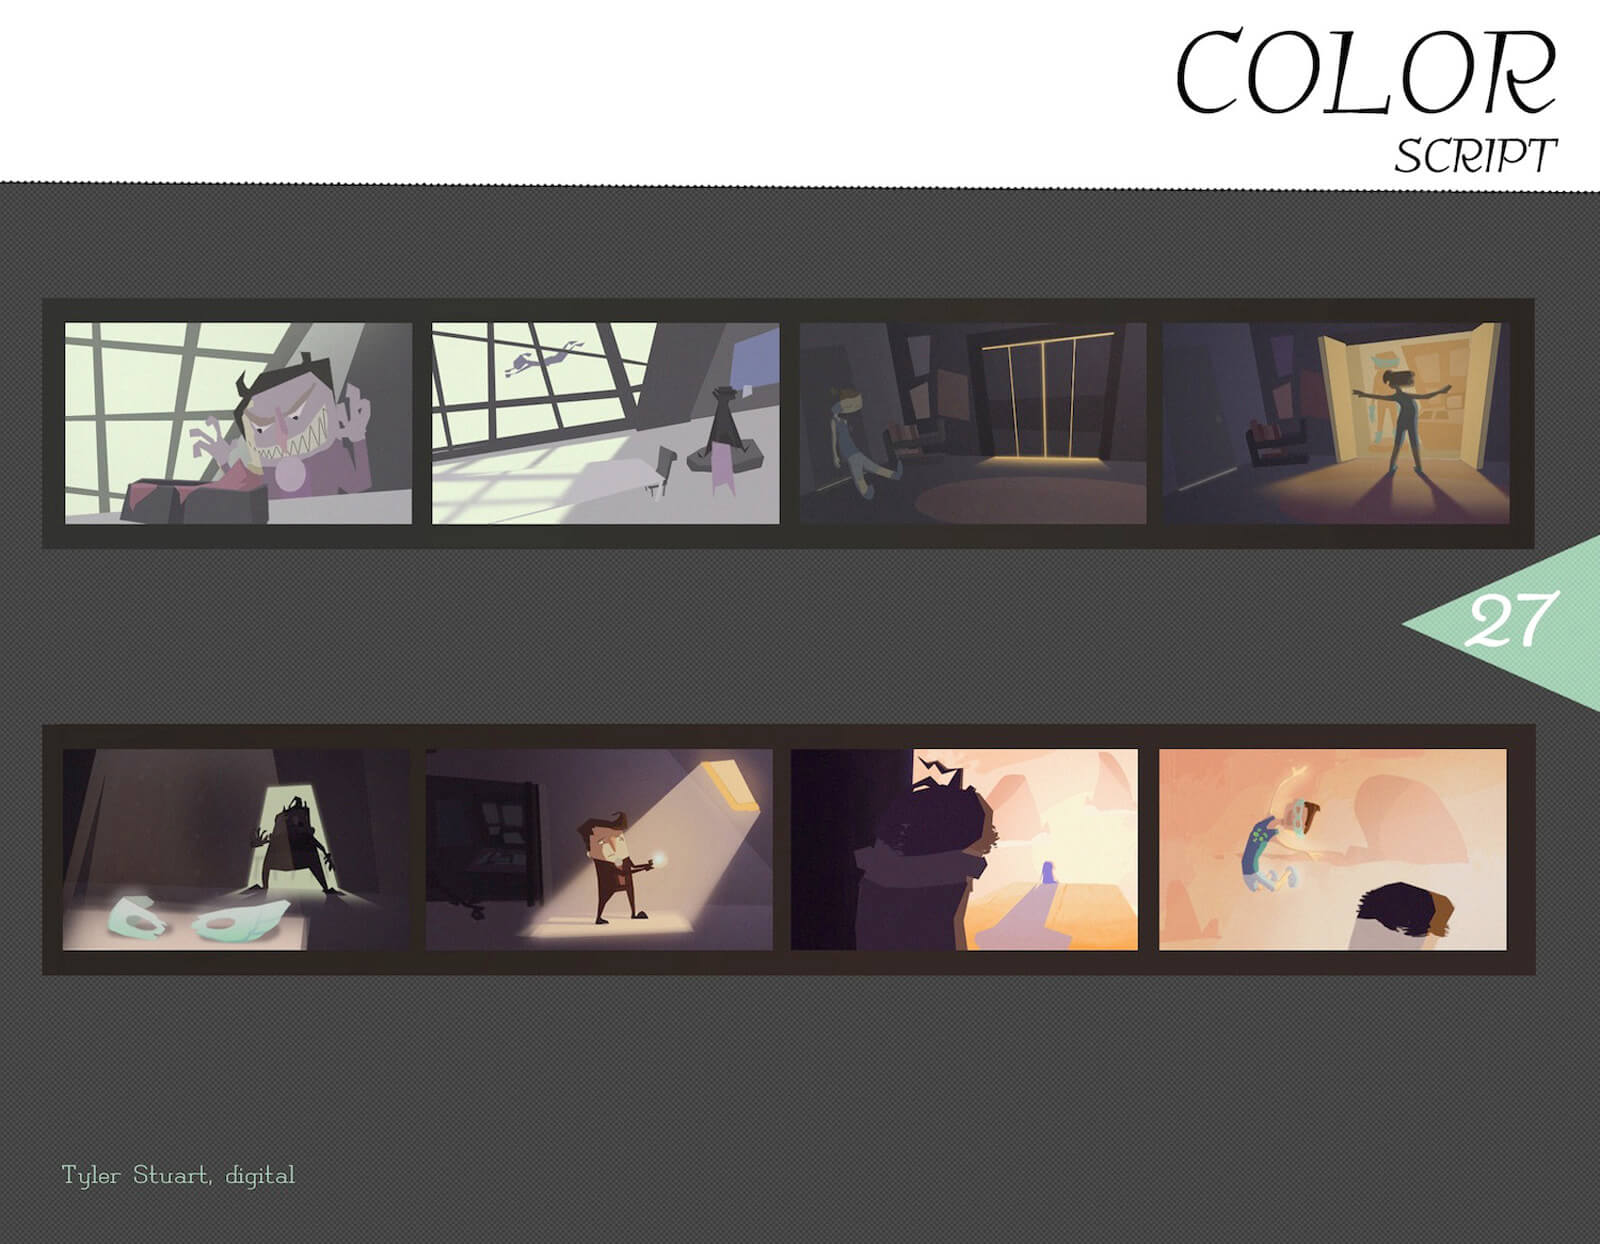 Color Script for the film Super Secret depicting 8 frames of the story from beginning to end